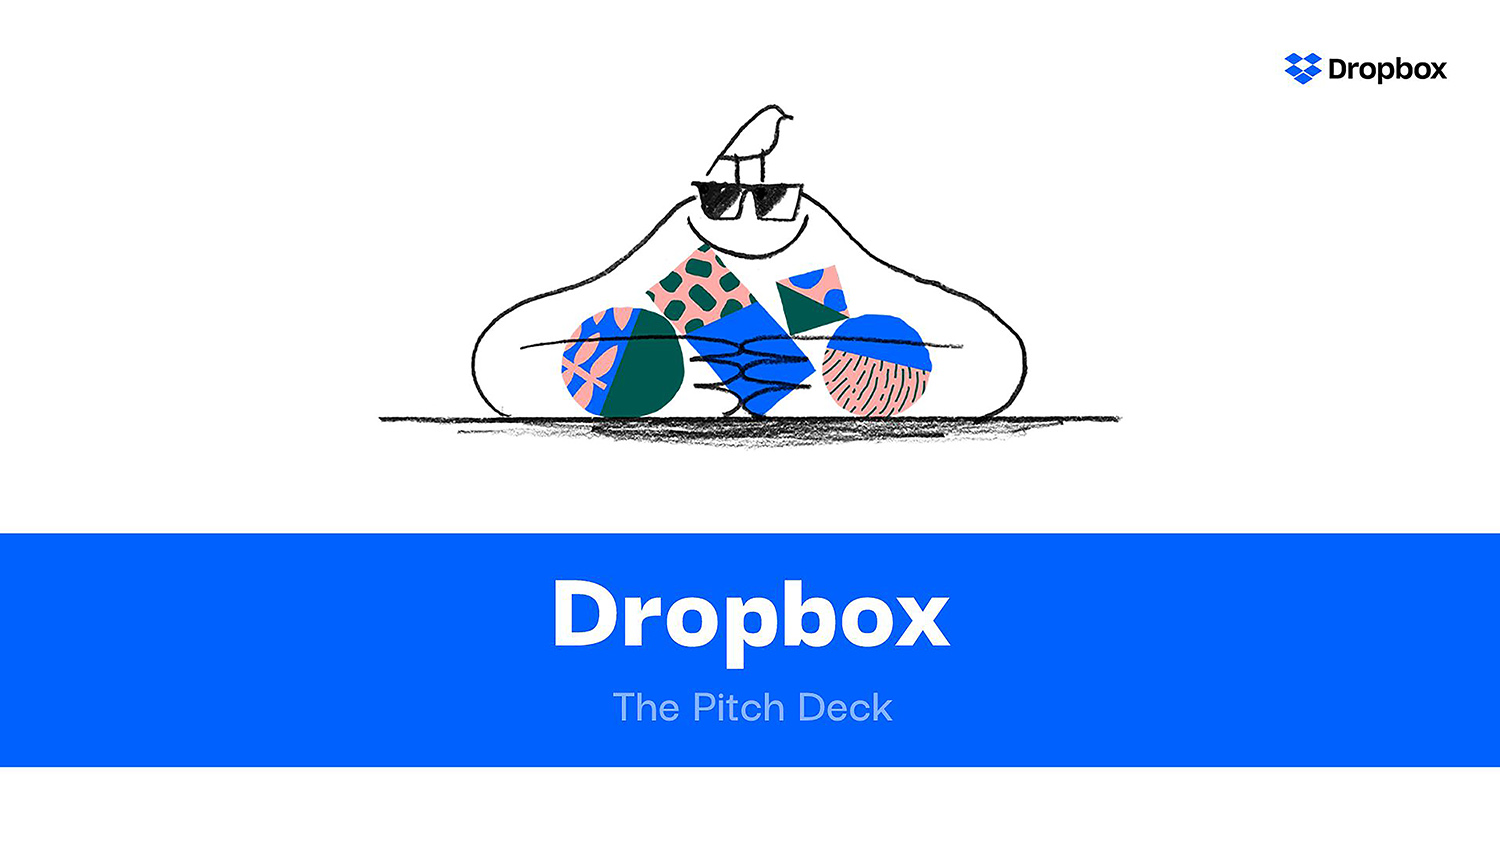 Dropbox Pitch Deck Template